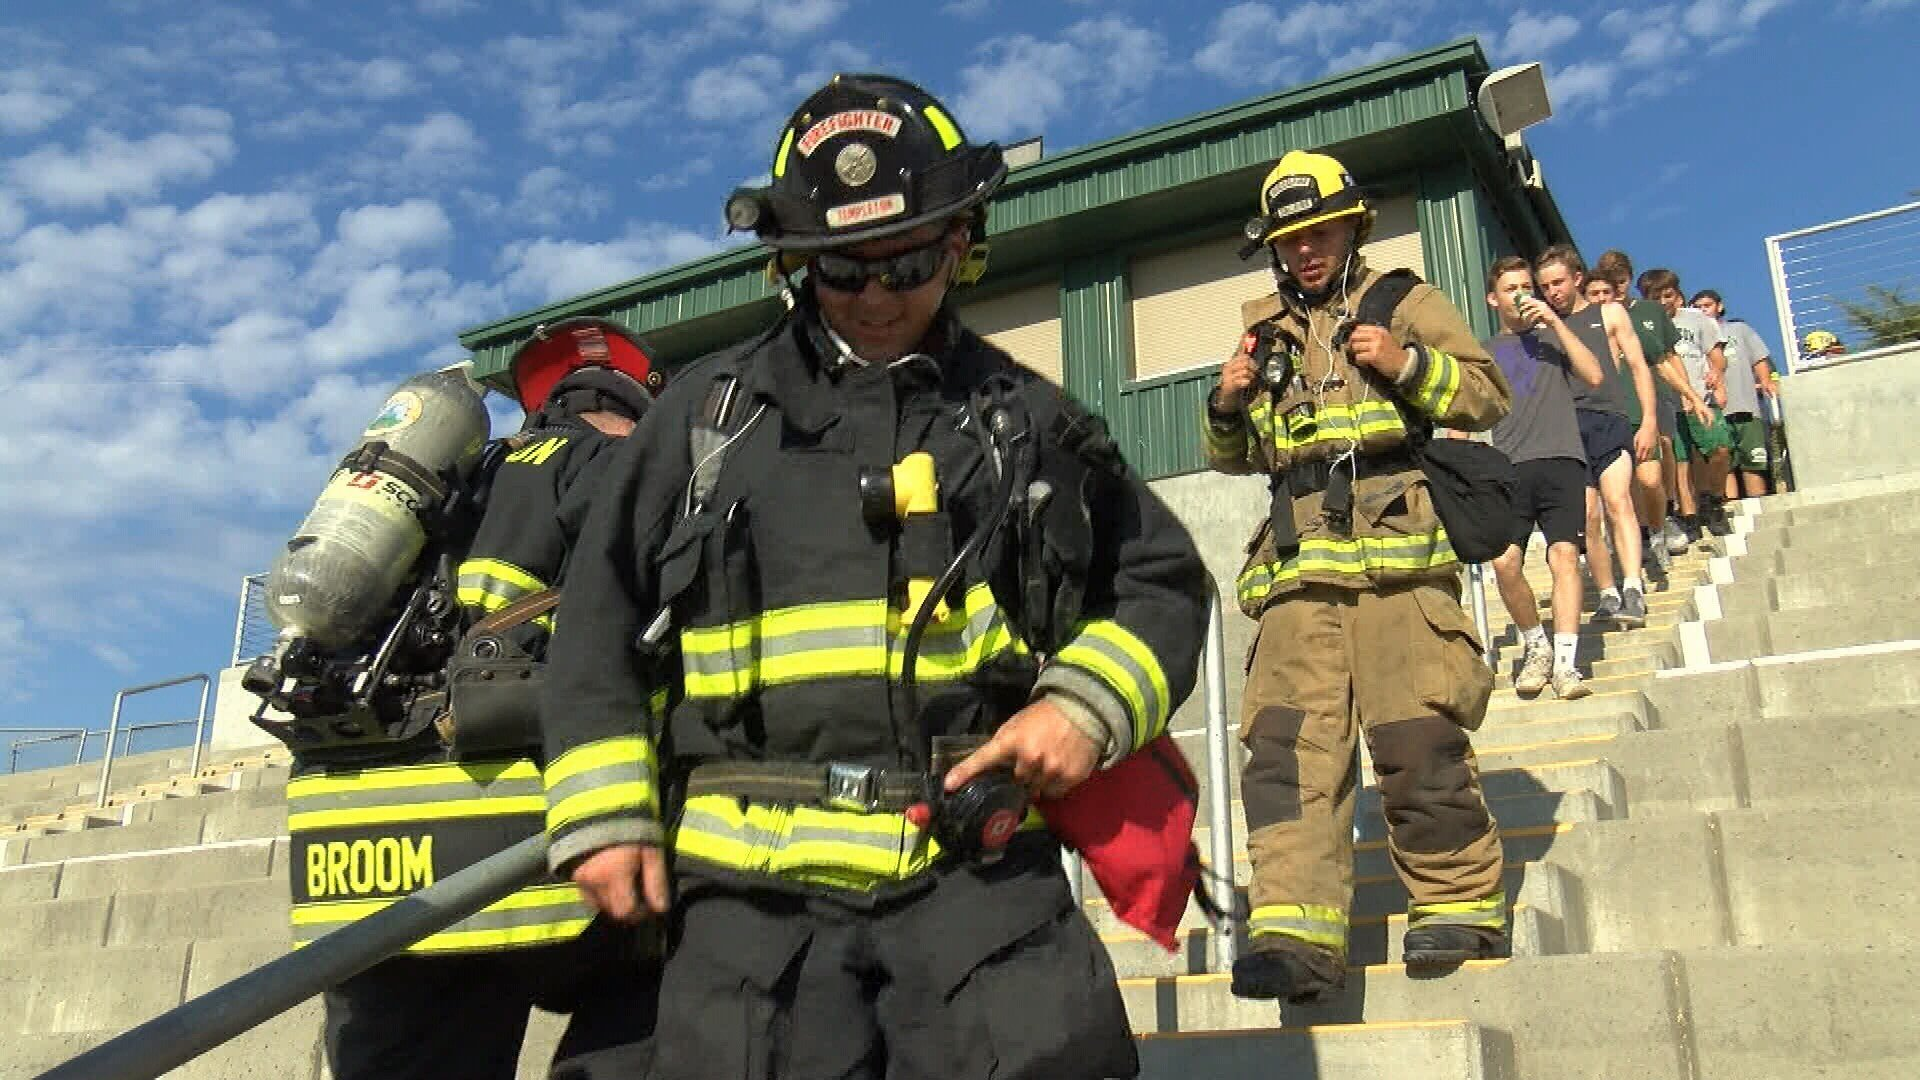 Tulsa firefighters take part in 9/11 Memorial Stair Climb